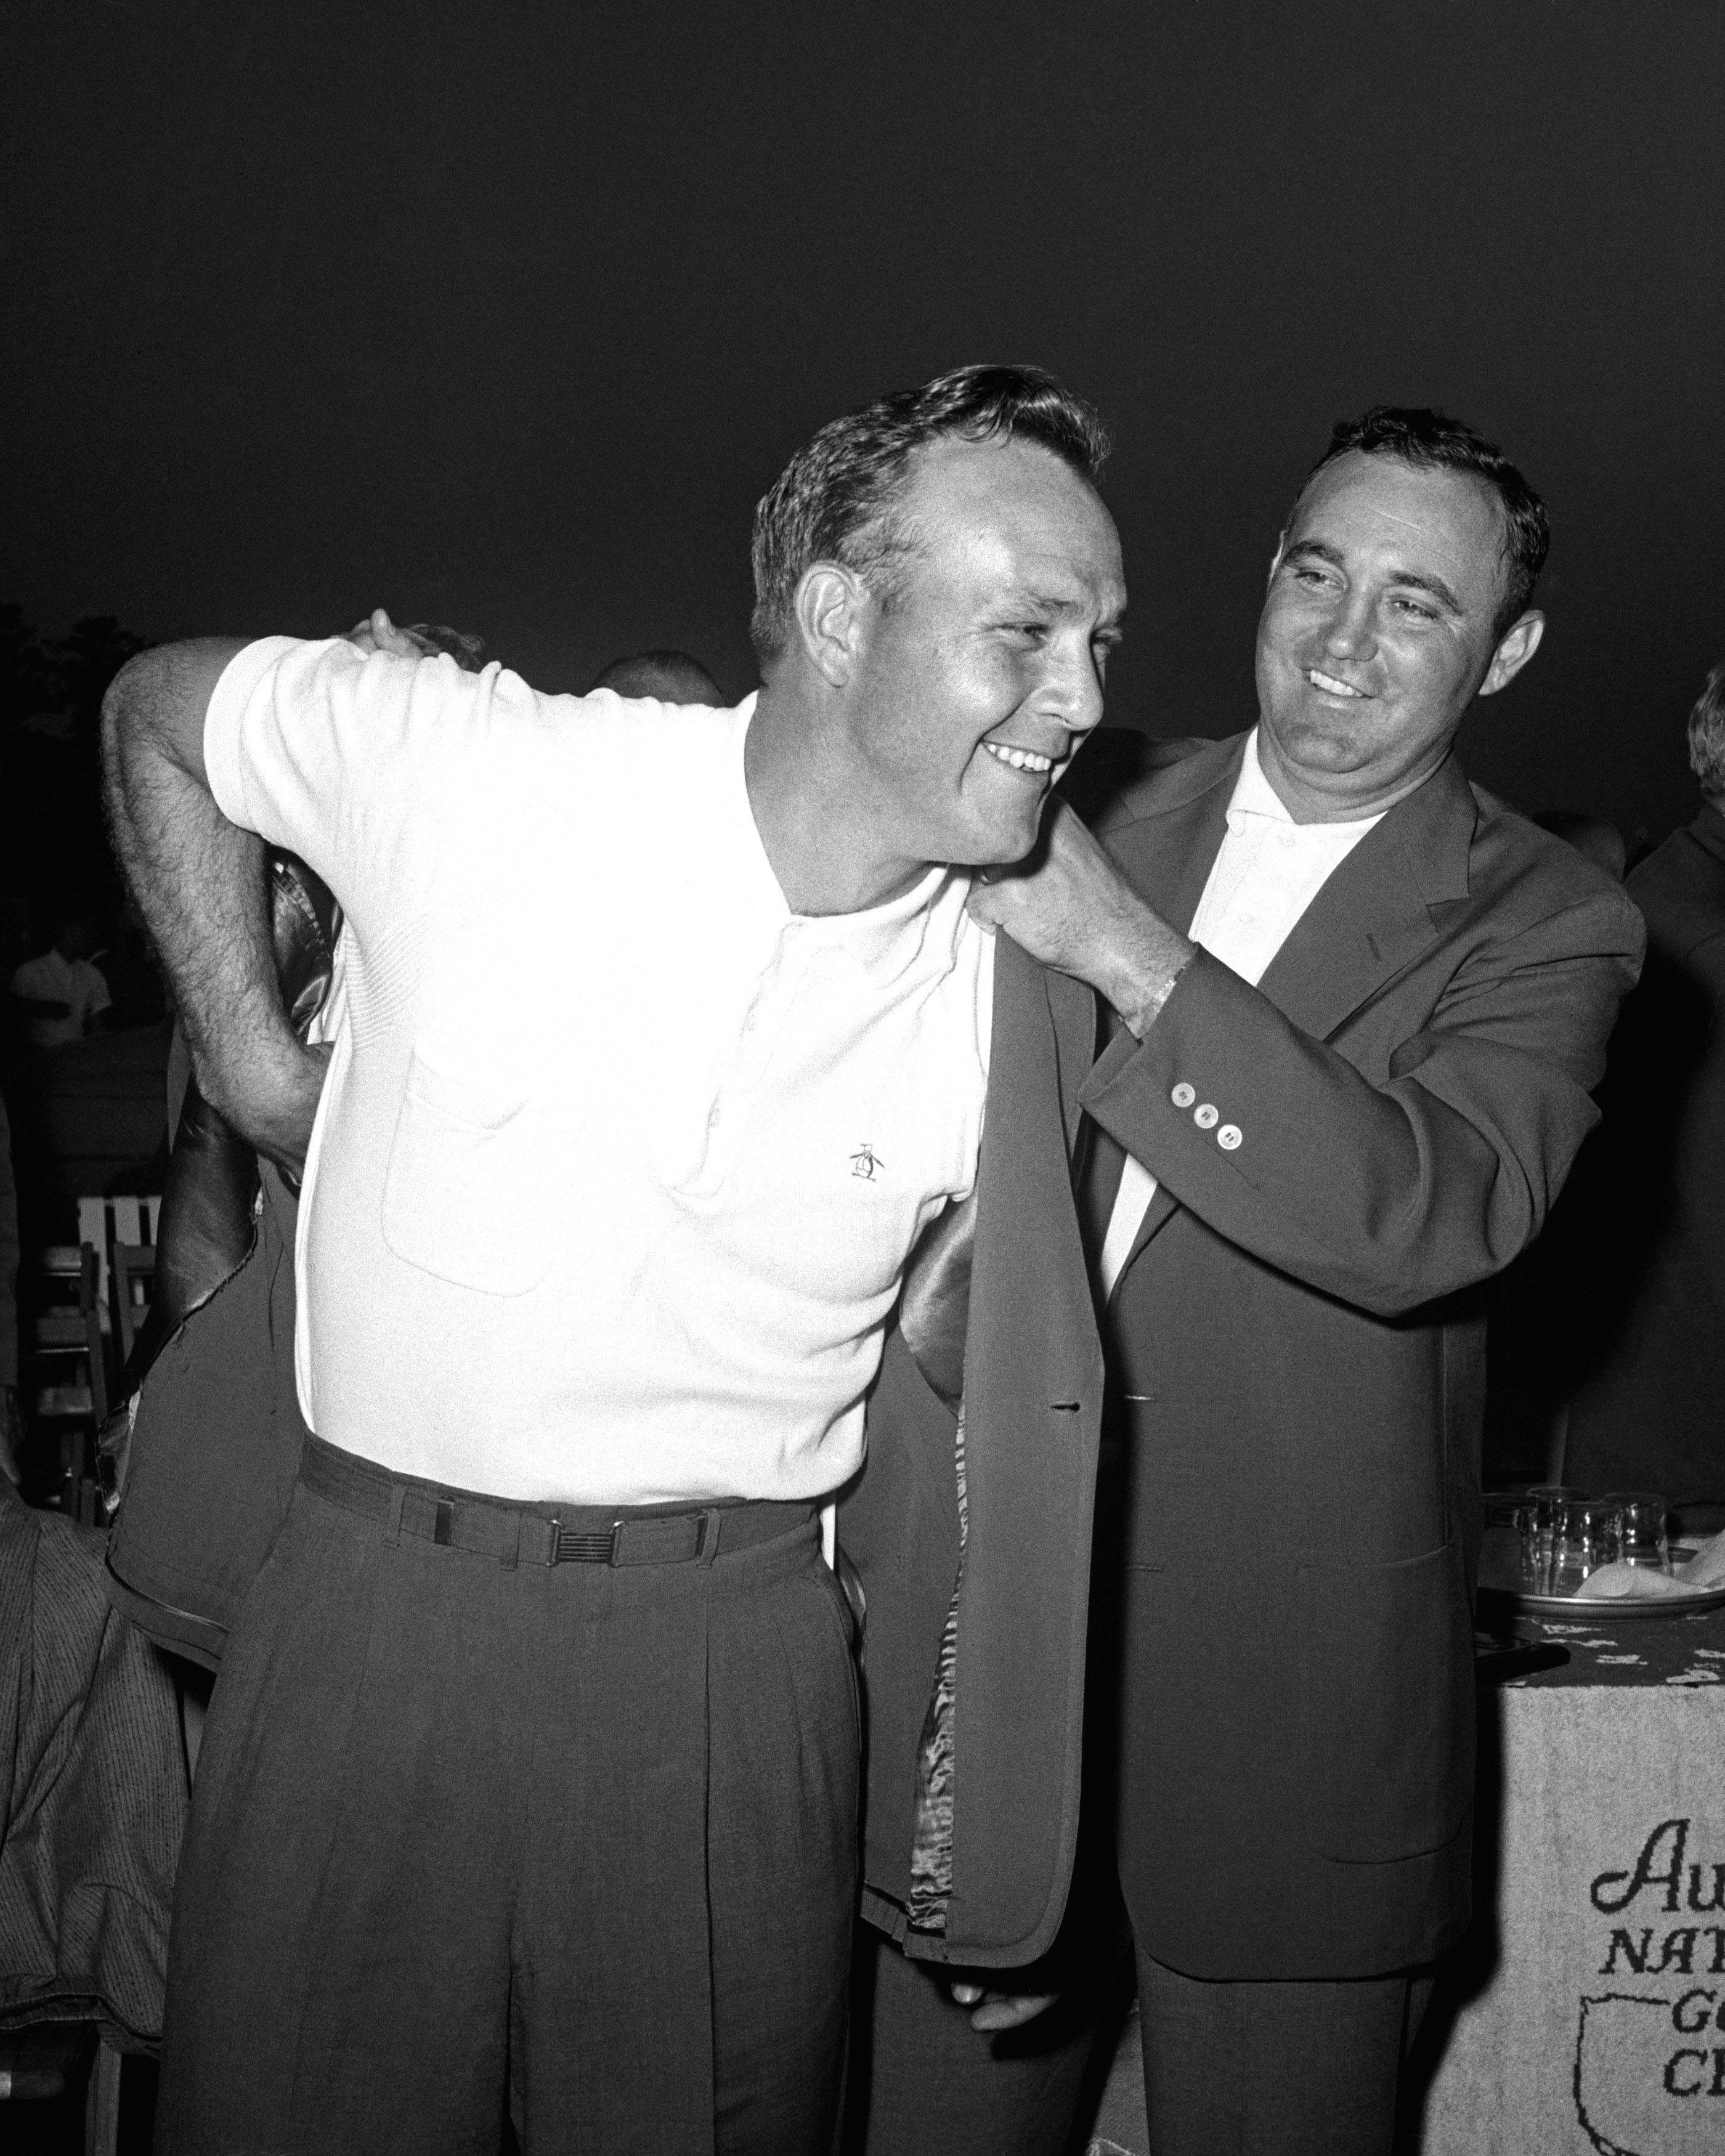 4. 1957: Augusta foreshadowing for Palmer, Ford